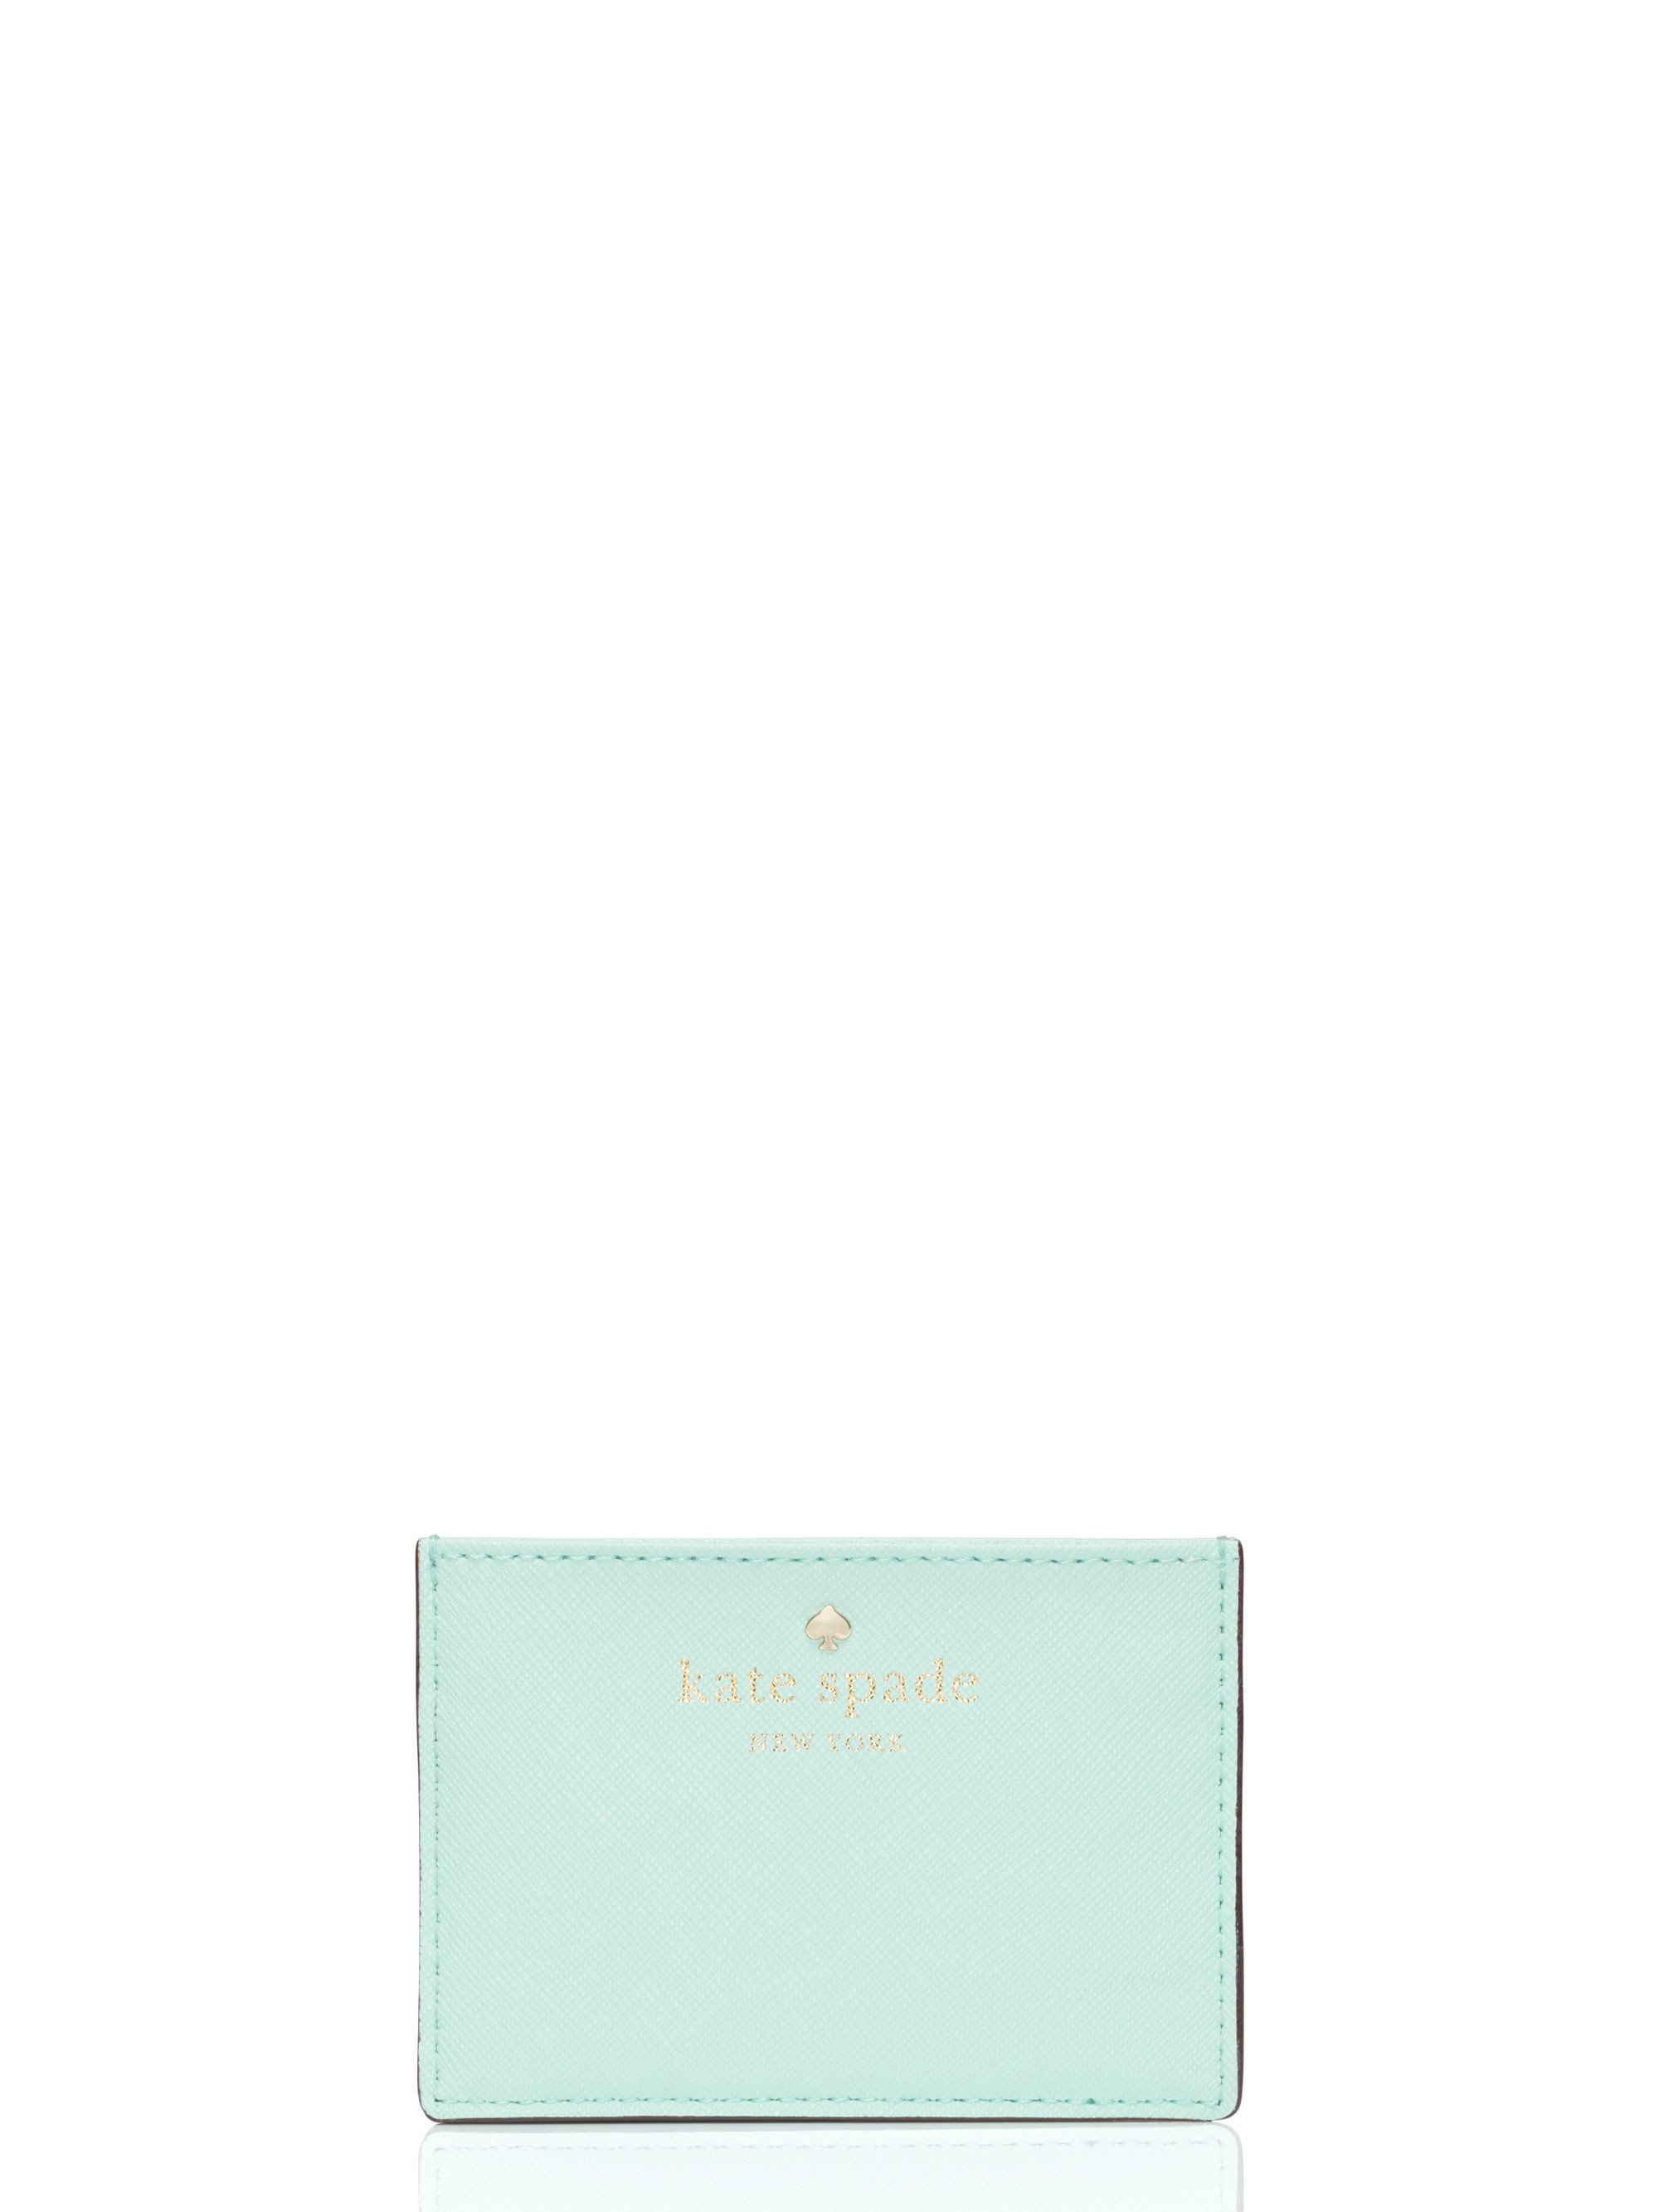 Lyst - Kate Spade New York Cedar Street Card Holder in Natural